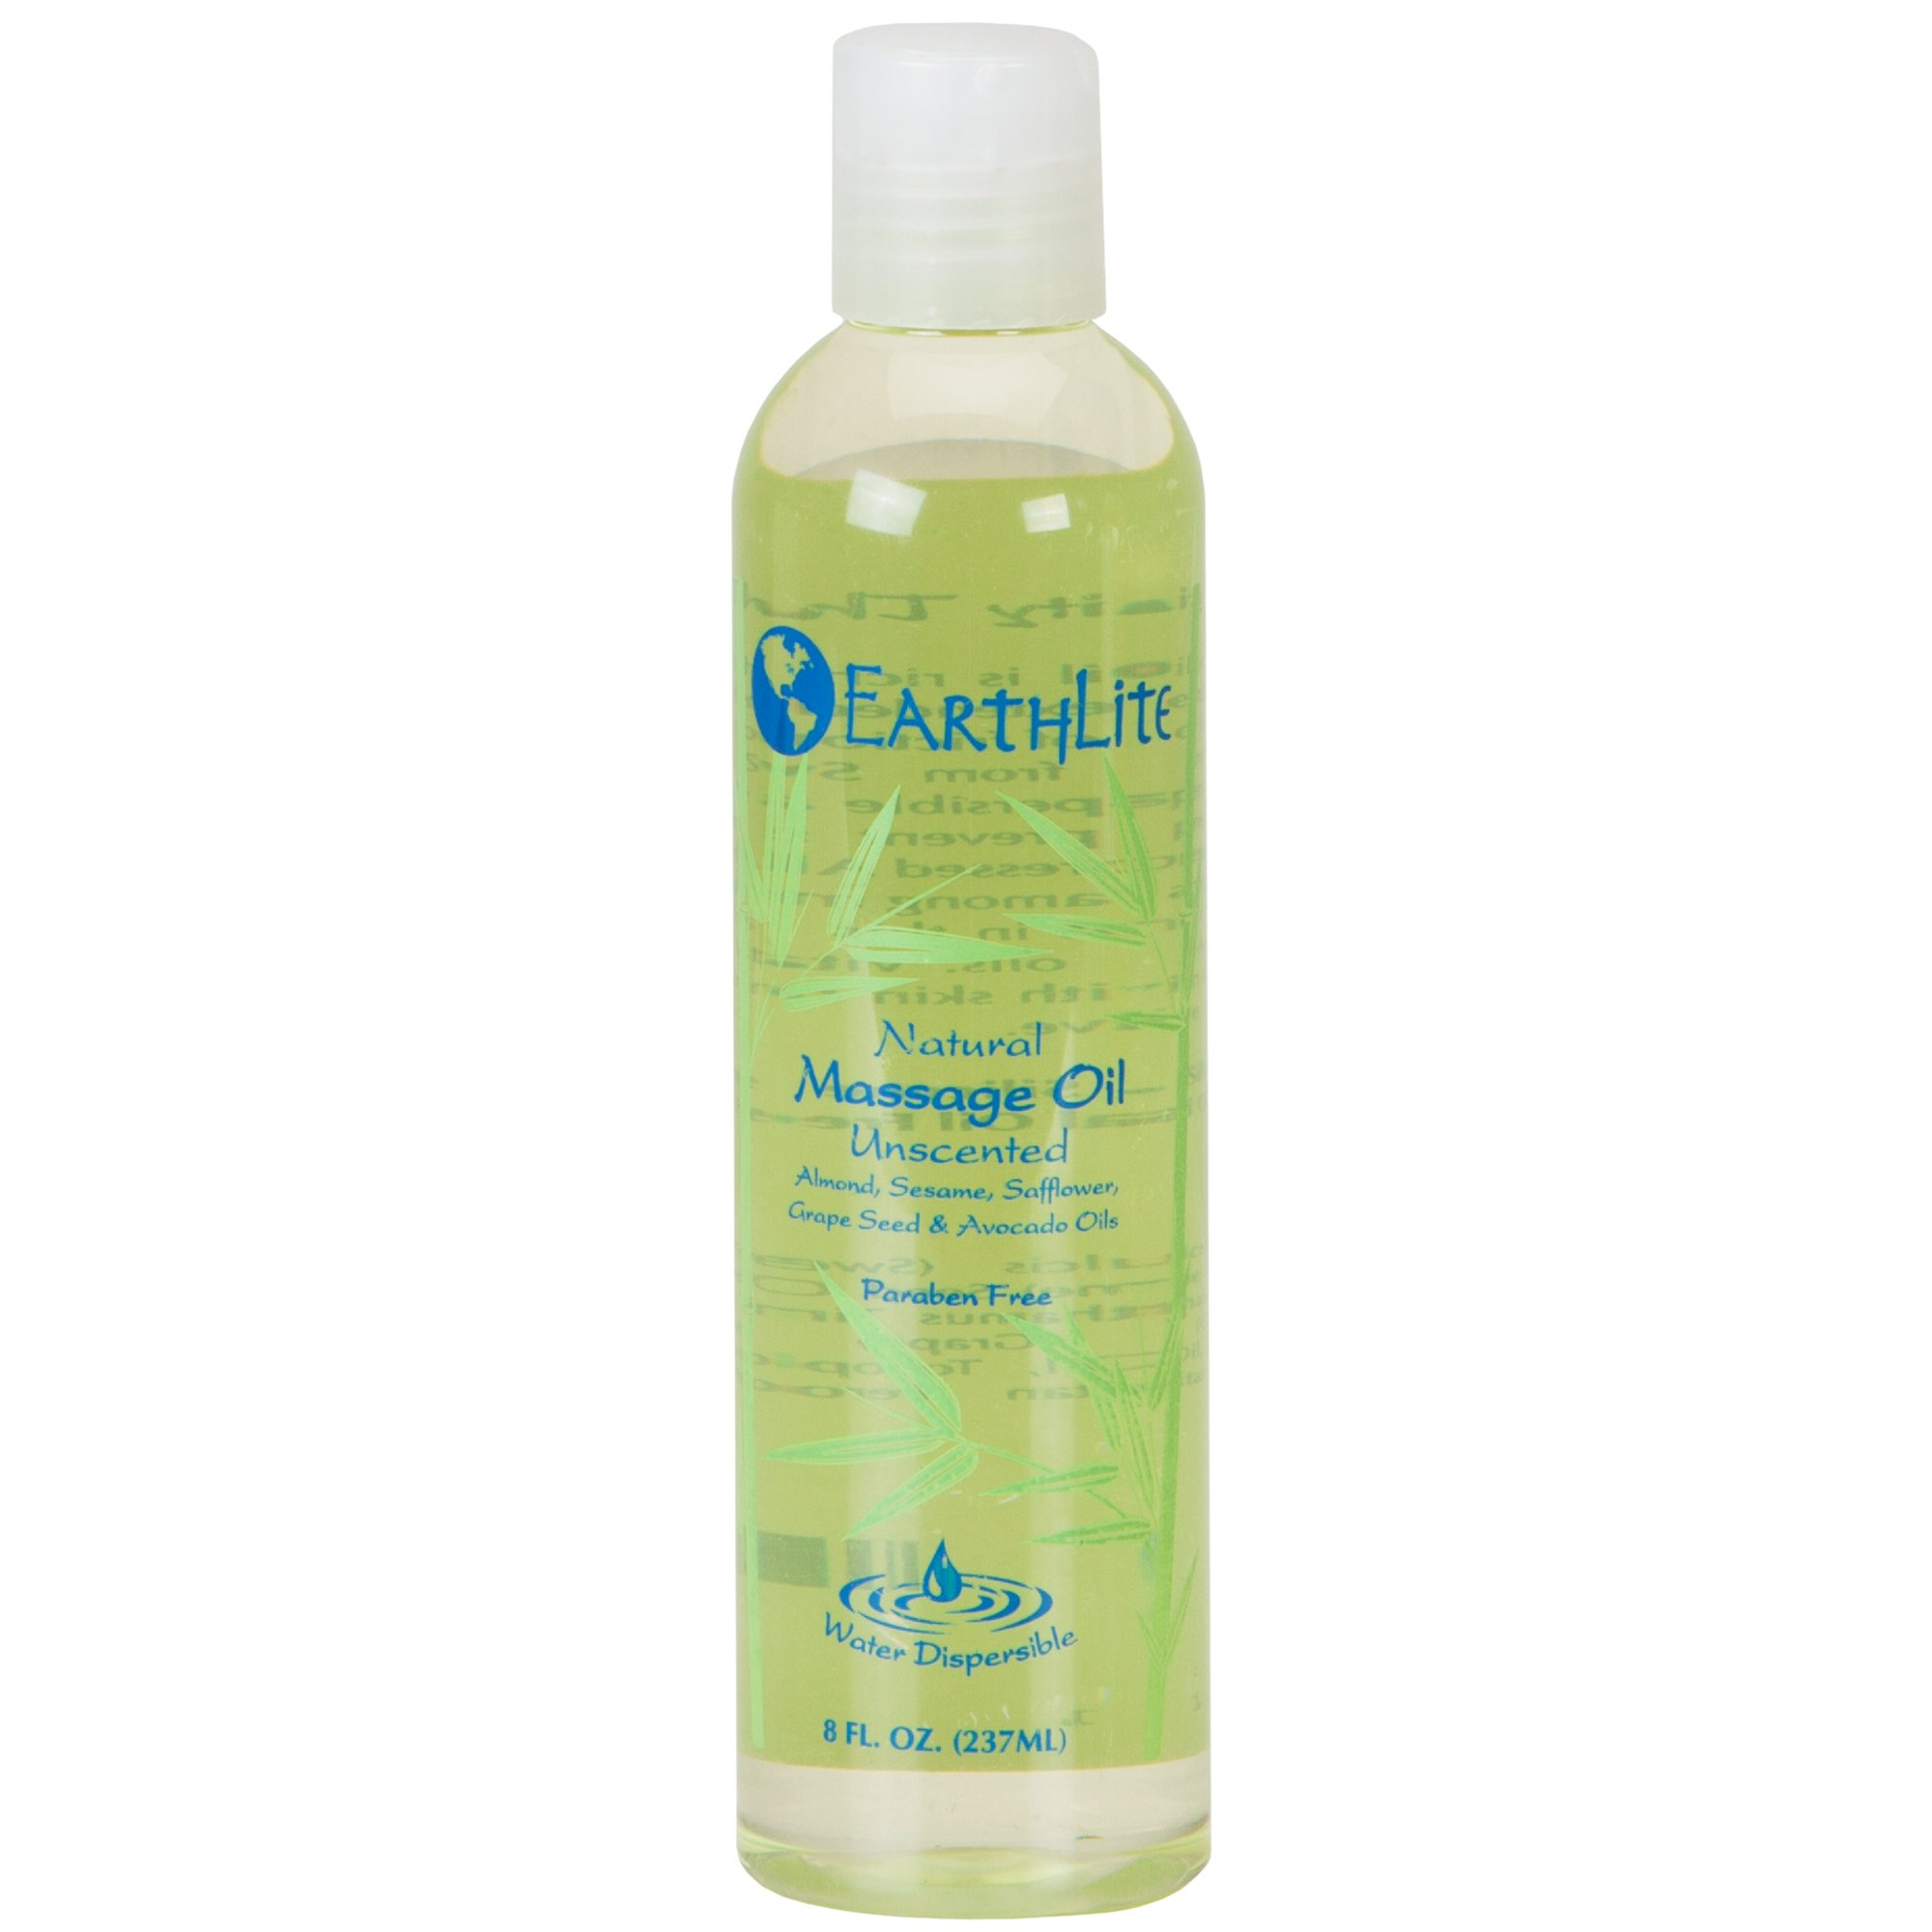 EARTHLITE Massage Oil - Natural, Unscented, Vitamin A, E & C to Repair & Moisture for All Massage Styles (8oz)